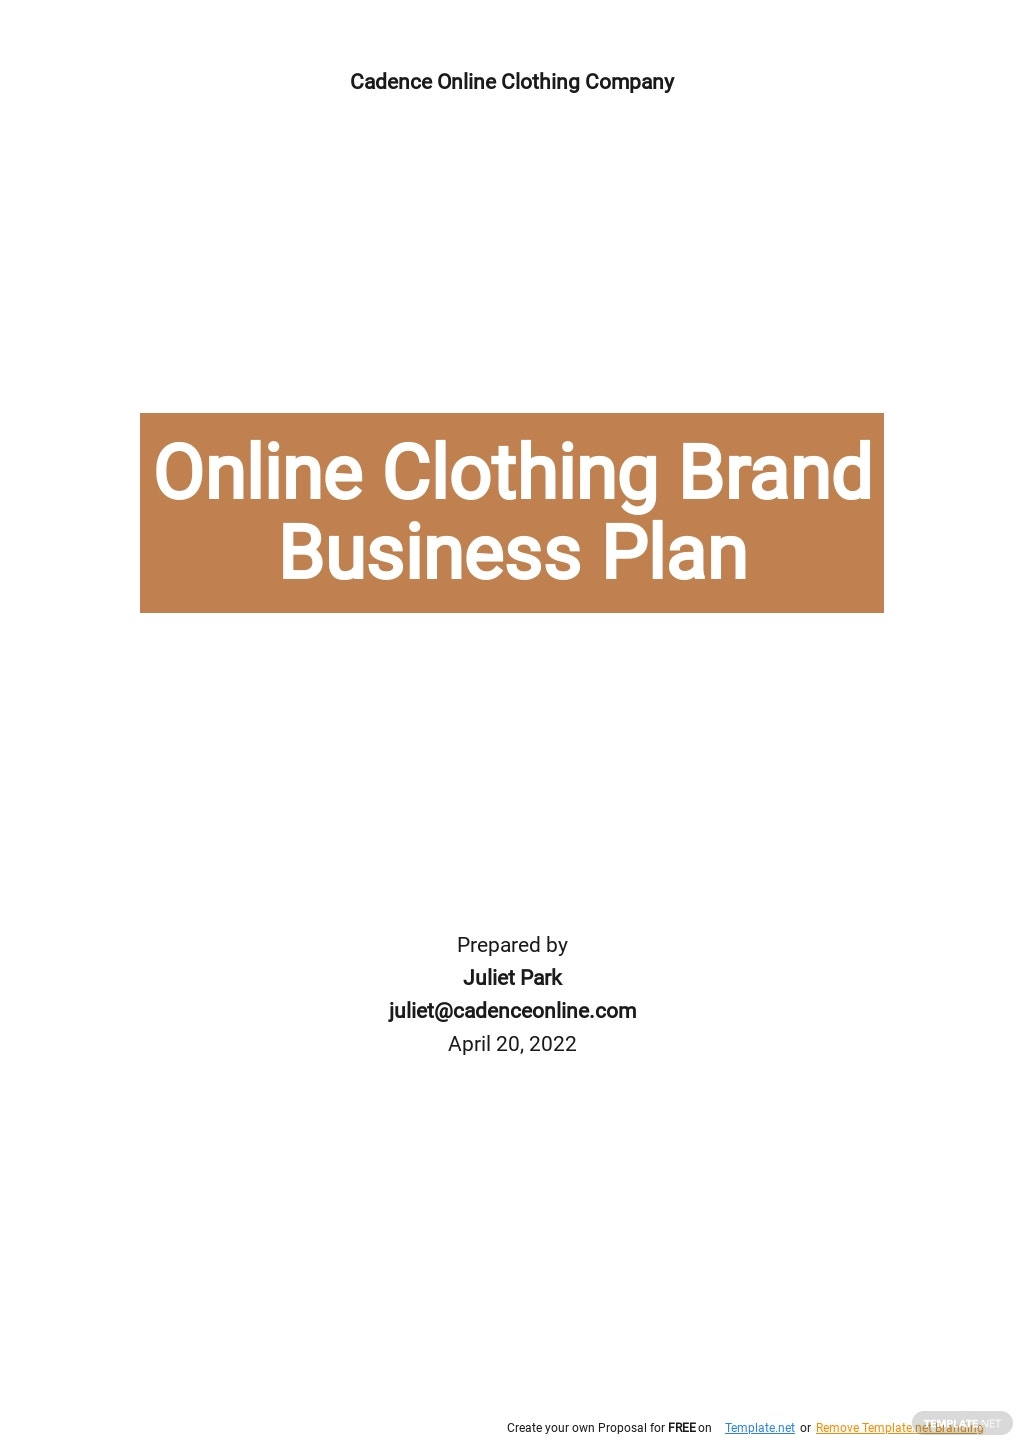 Online Clothing Brand Business Plan Template.jpe